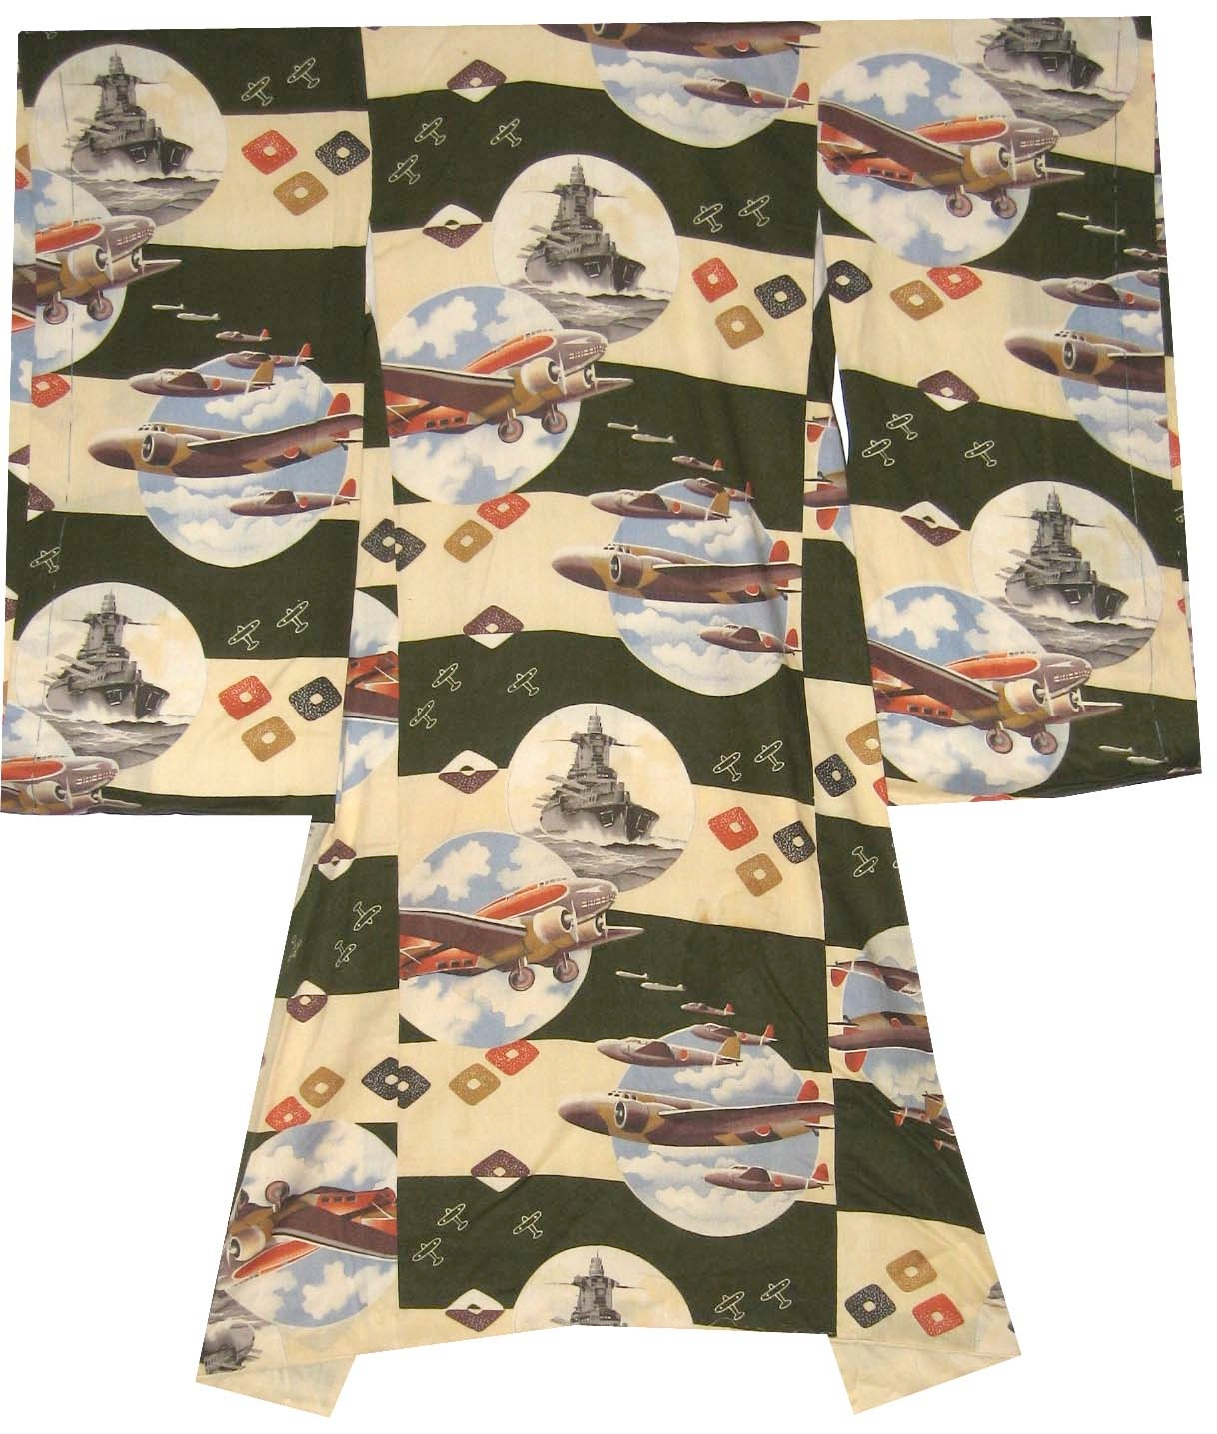 Bombers and Battleships,  Infant's Omiyamairi, c. 1940, rayon, 36h x 30w in.